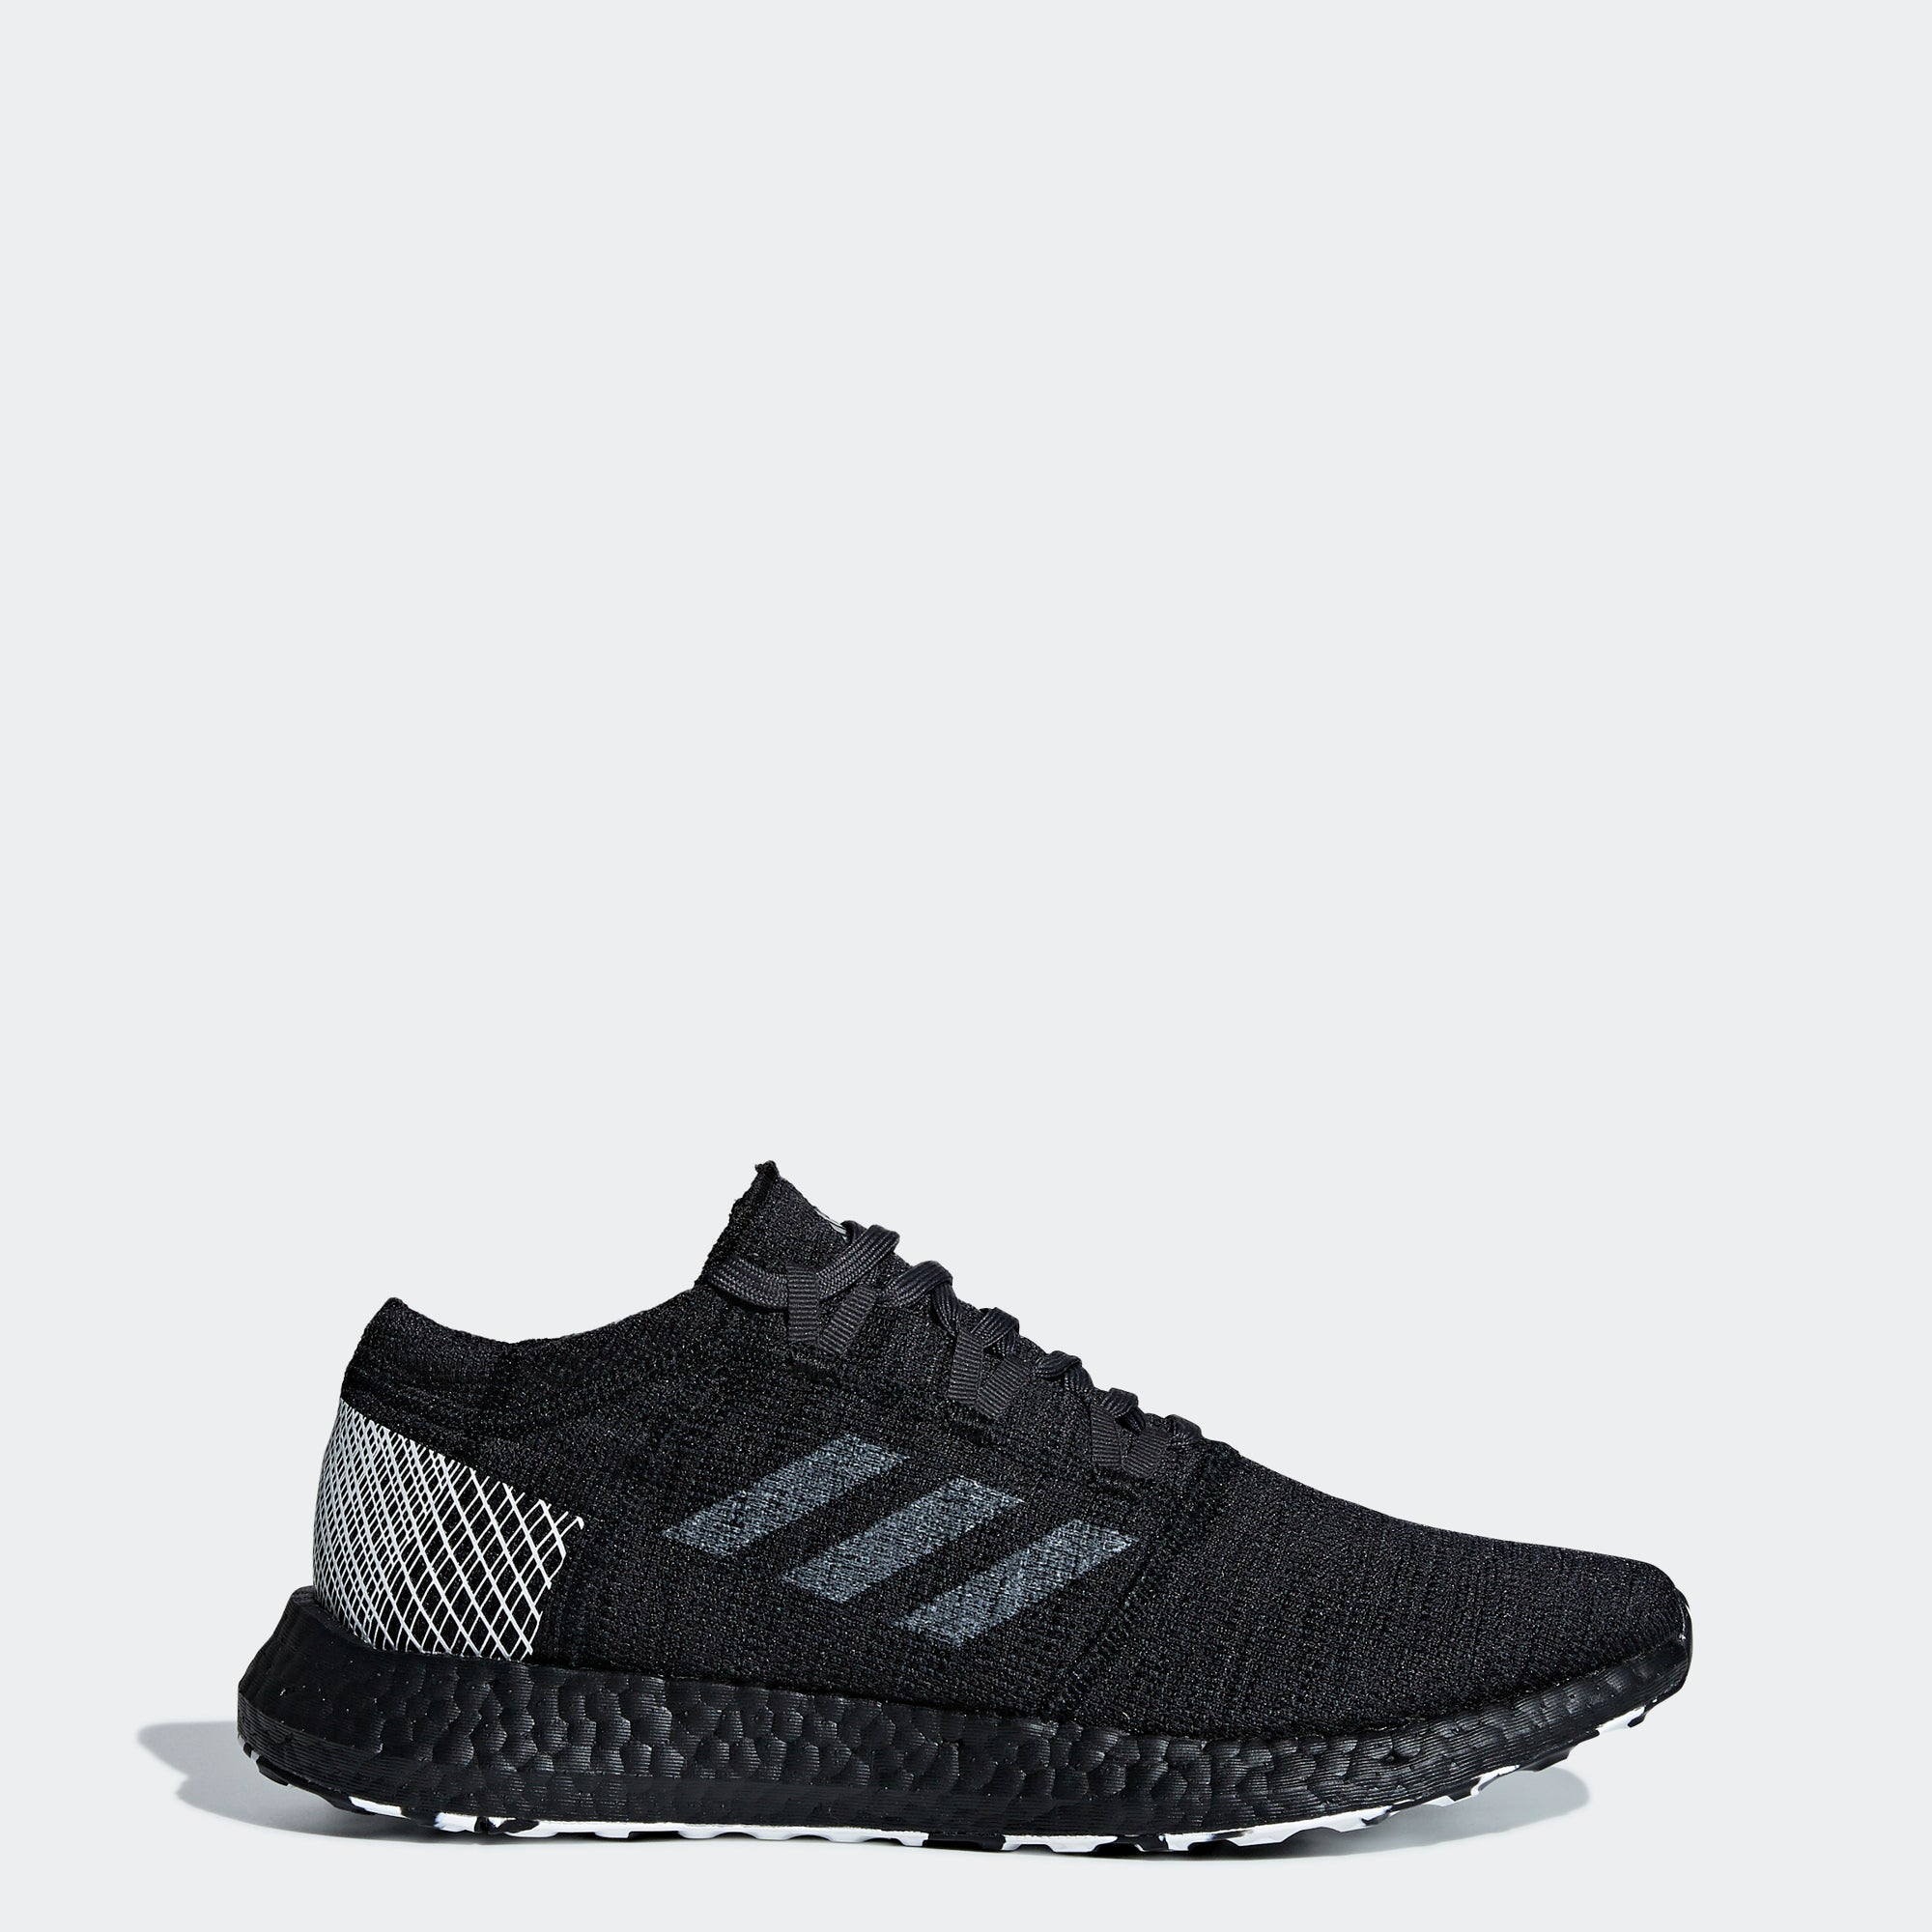 374dd72a497 Men s adidas Running PureBOOST Go LTD Shoes Black Carbon